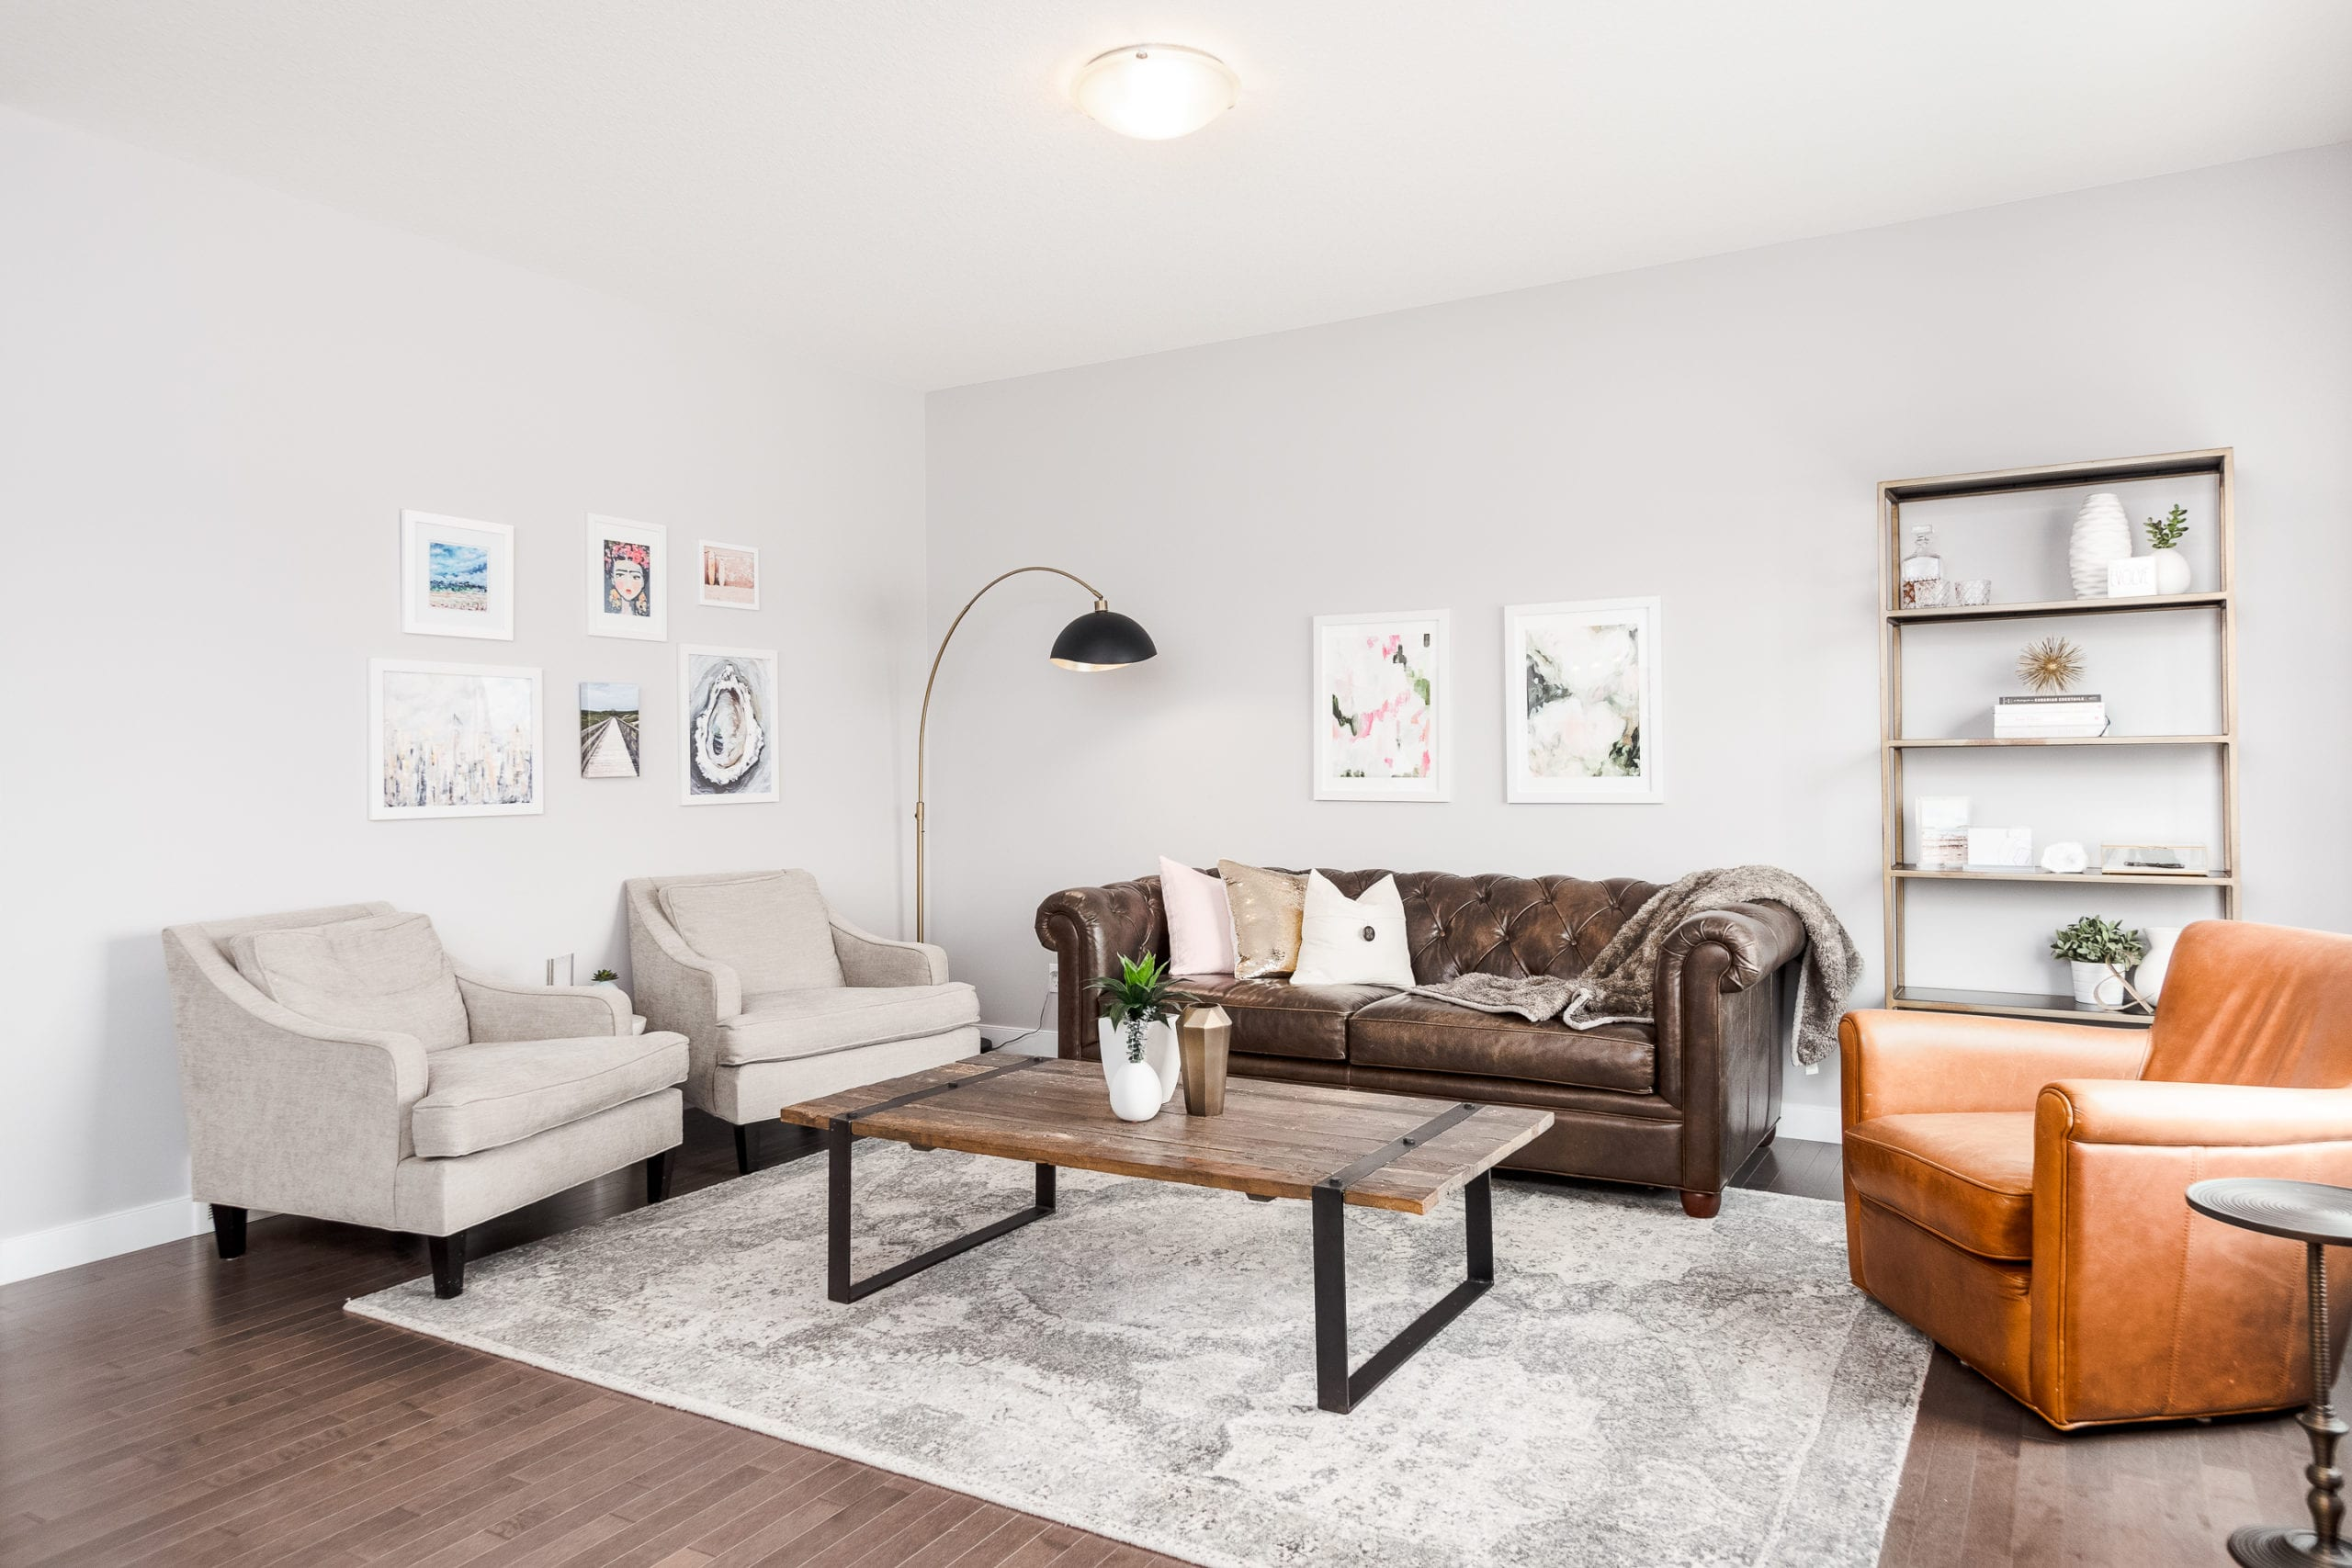 Hello Gorgeous - 1306 Kings Heights Way SE, Airdrie AB. - Tara Molina Real Estate (16 of 53)